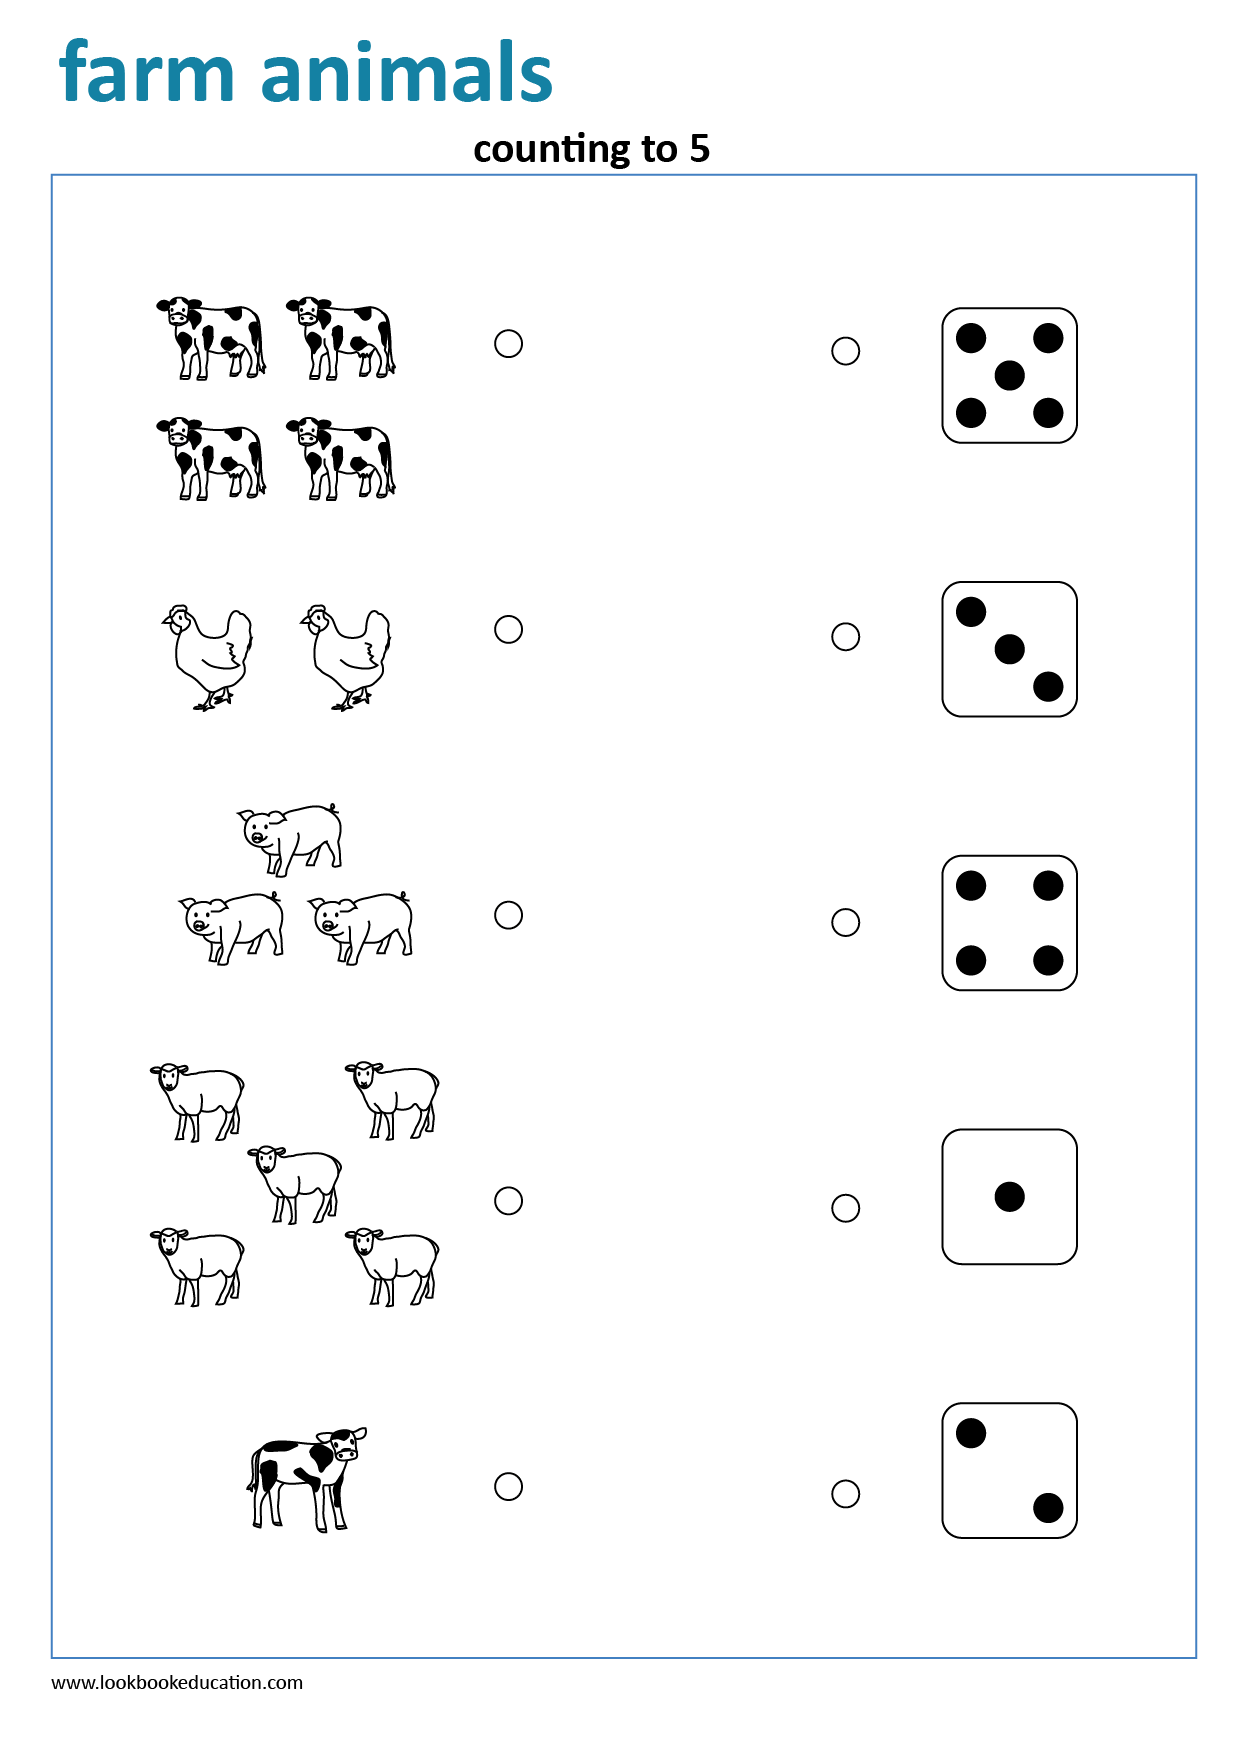 Worksheet Counting To 5 In